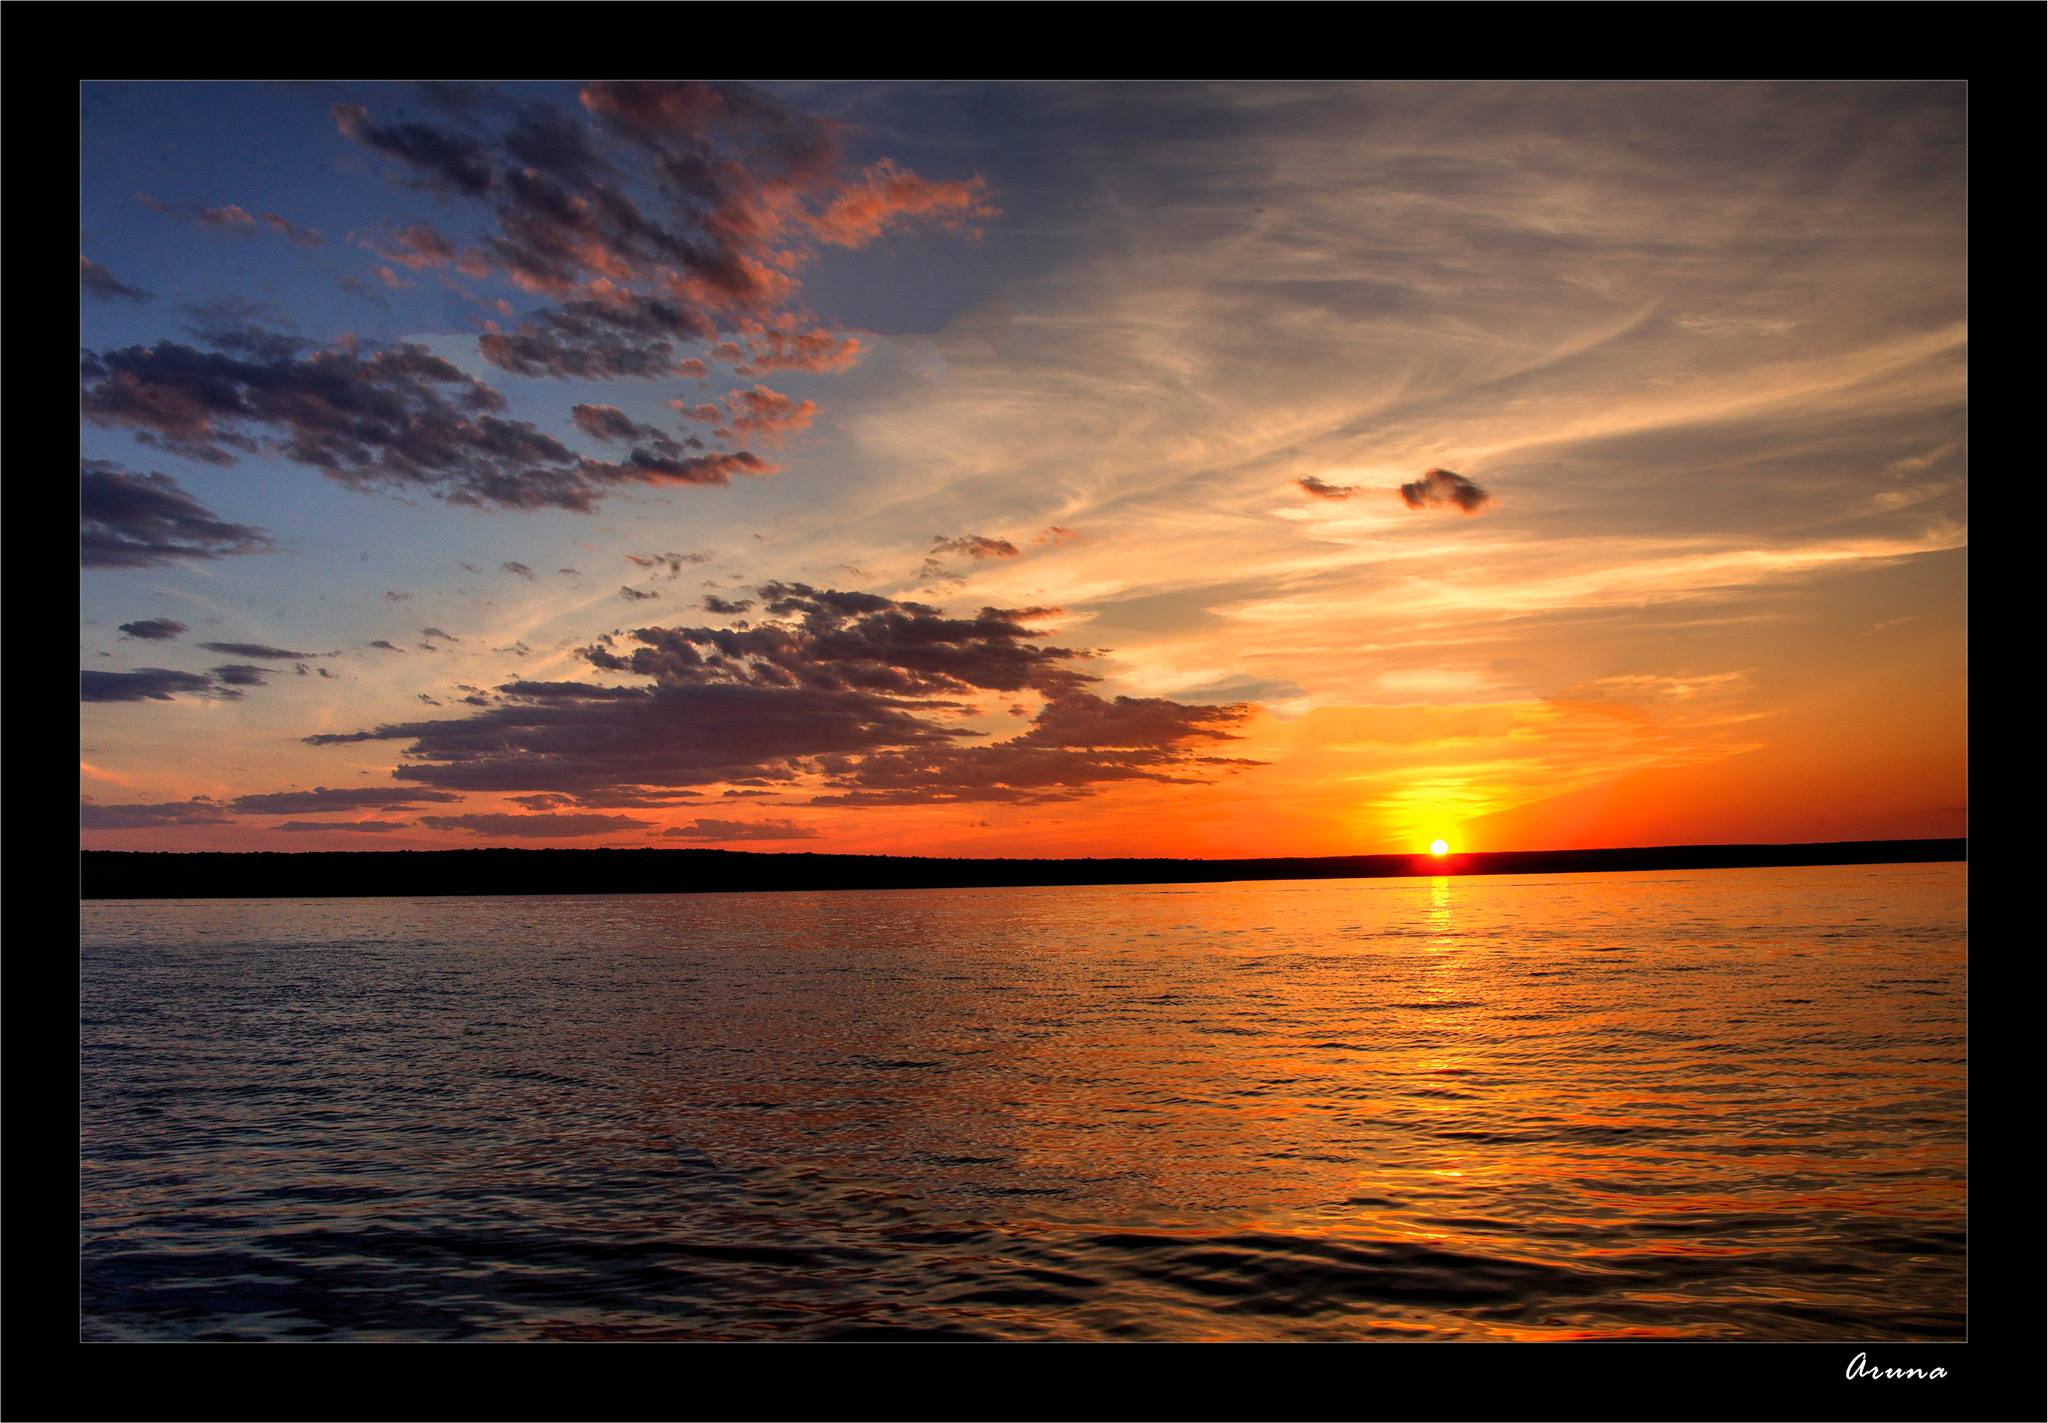 Sunset over Munising bay